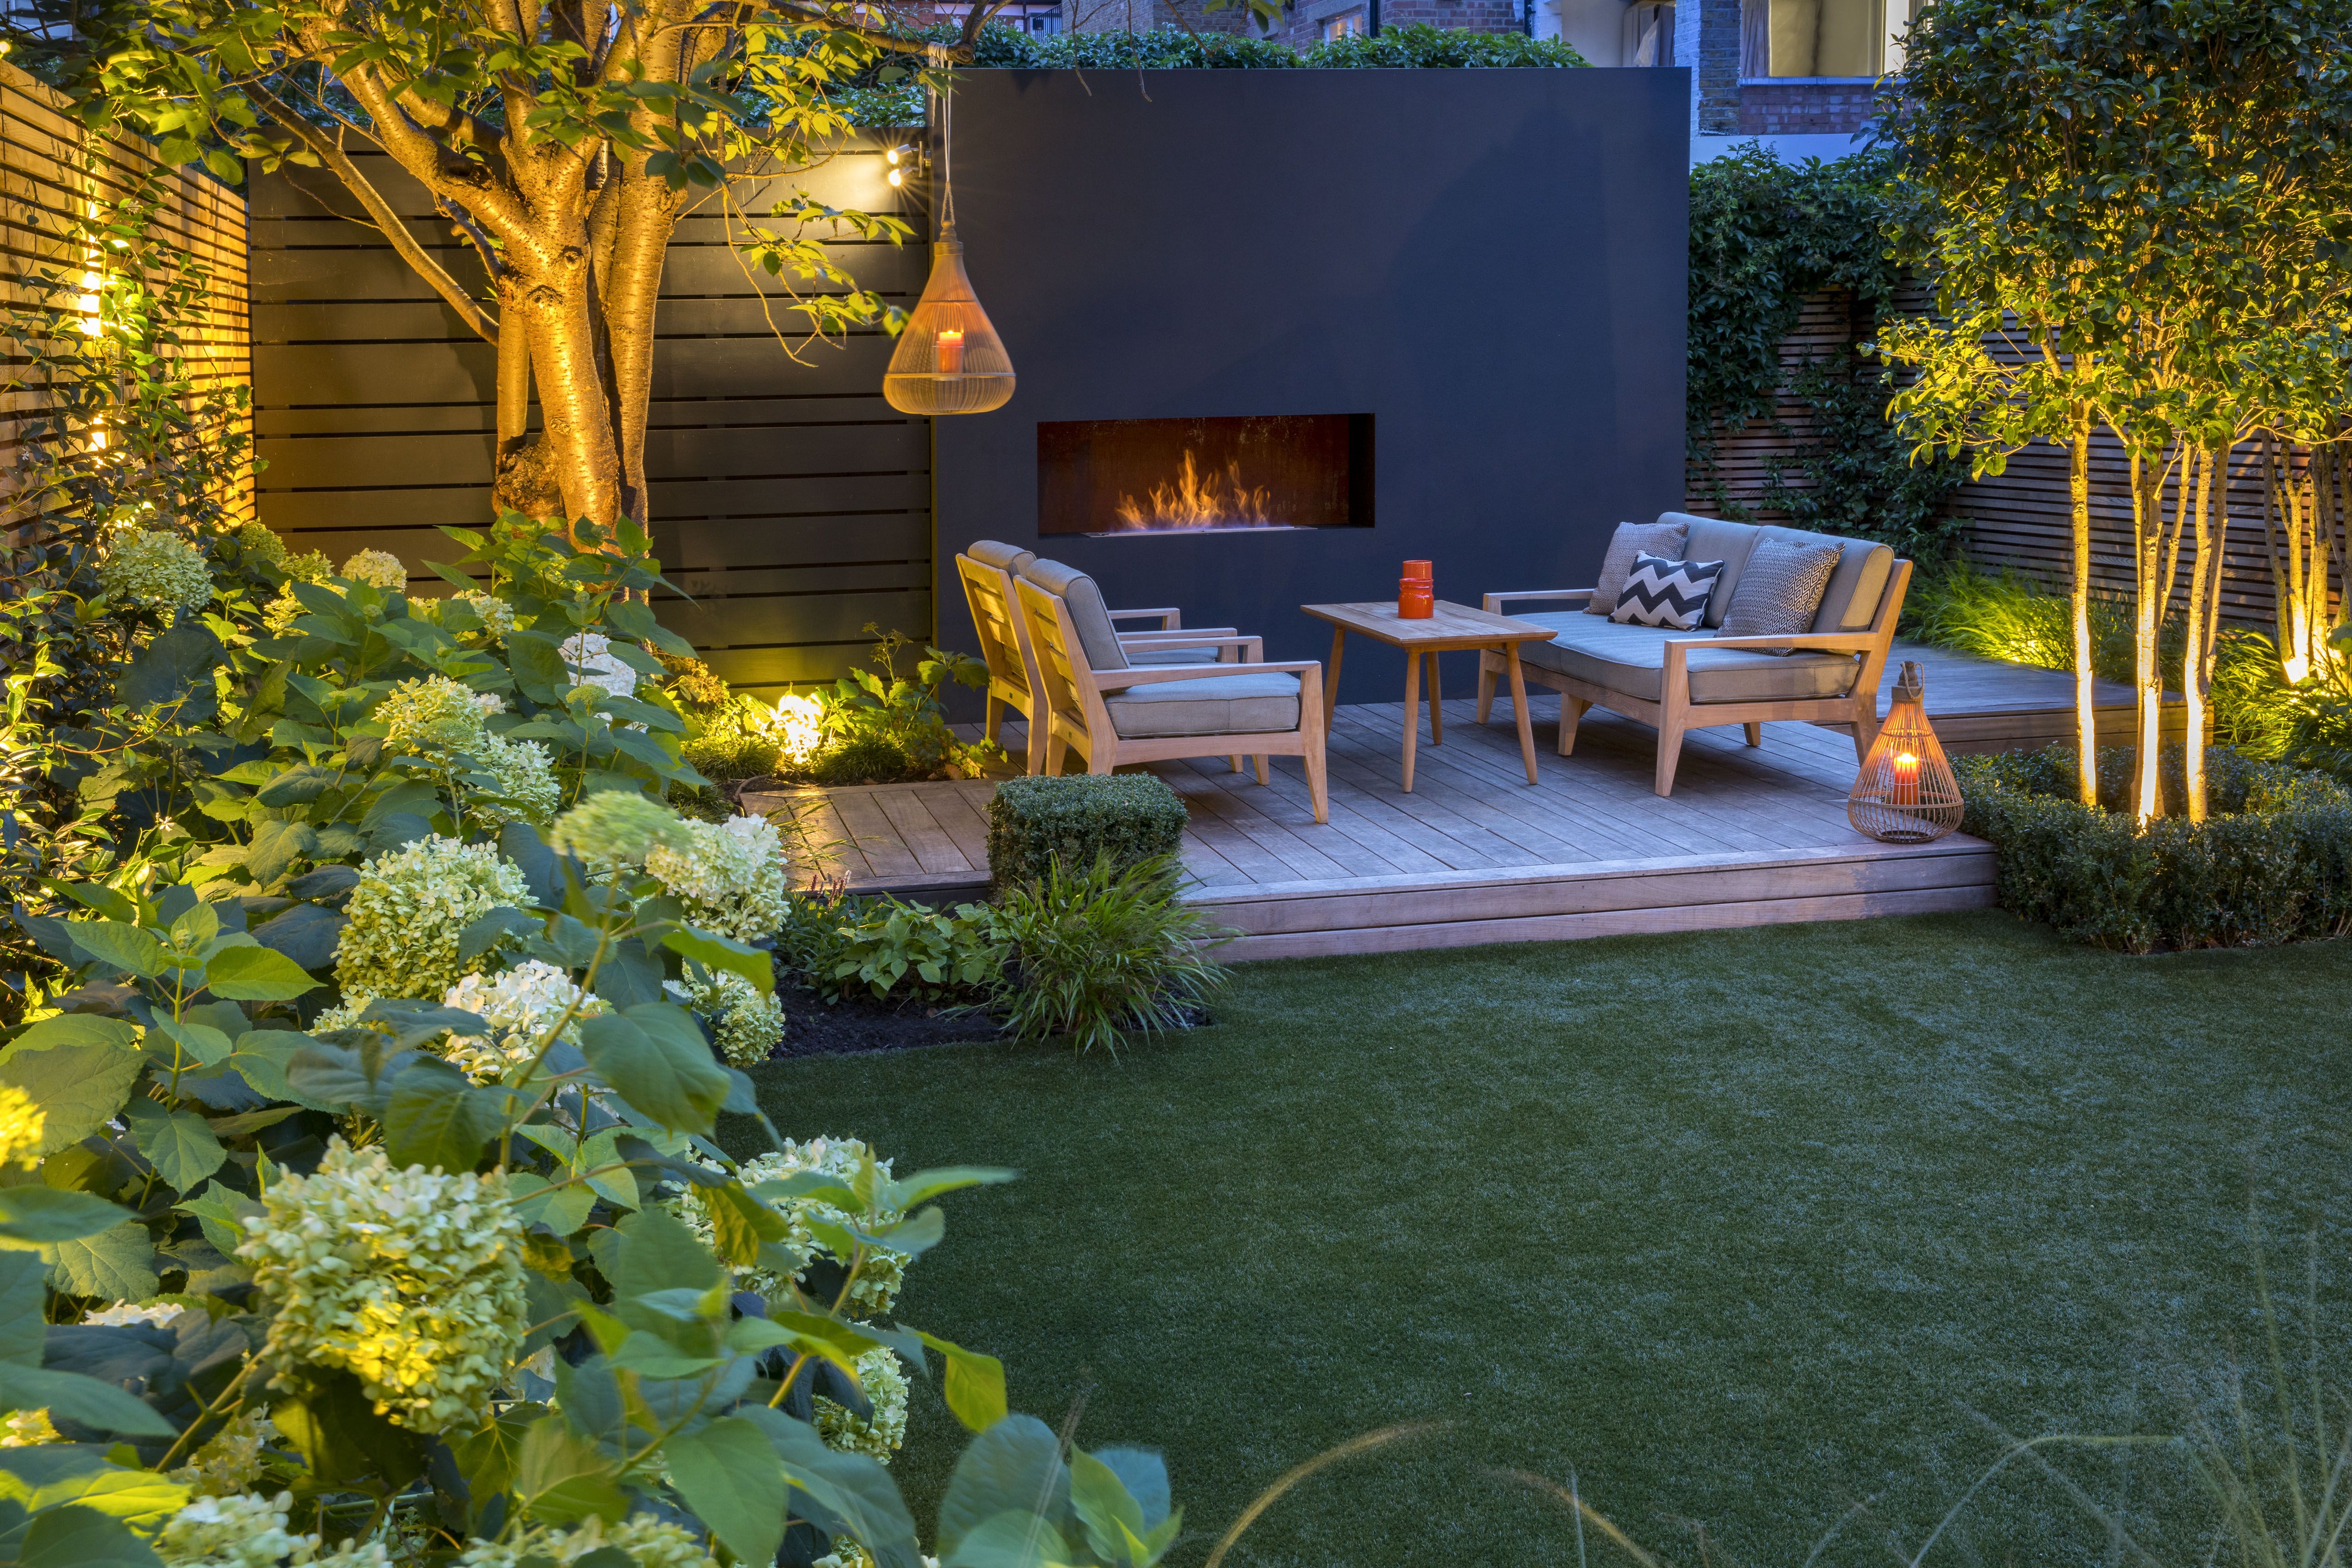 Outdoor Fireplace Garden Designs - Garden Club London on Landscape Garden Designs For Small Gardens id=33877